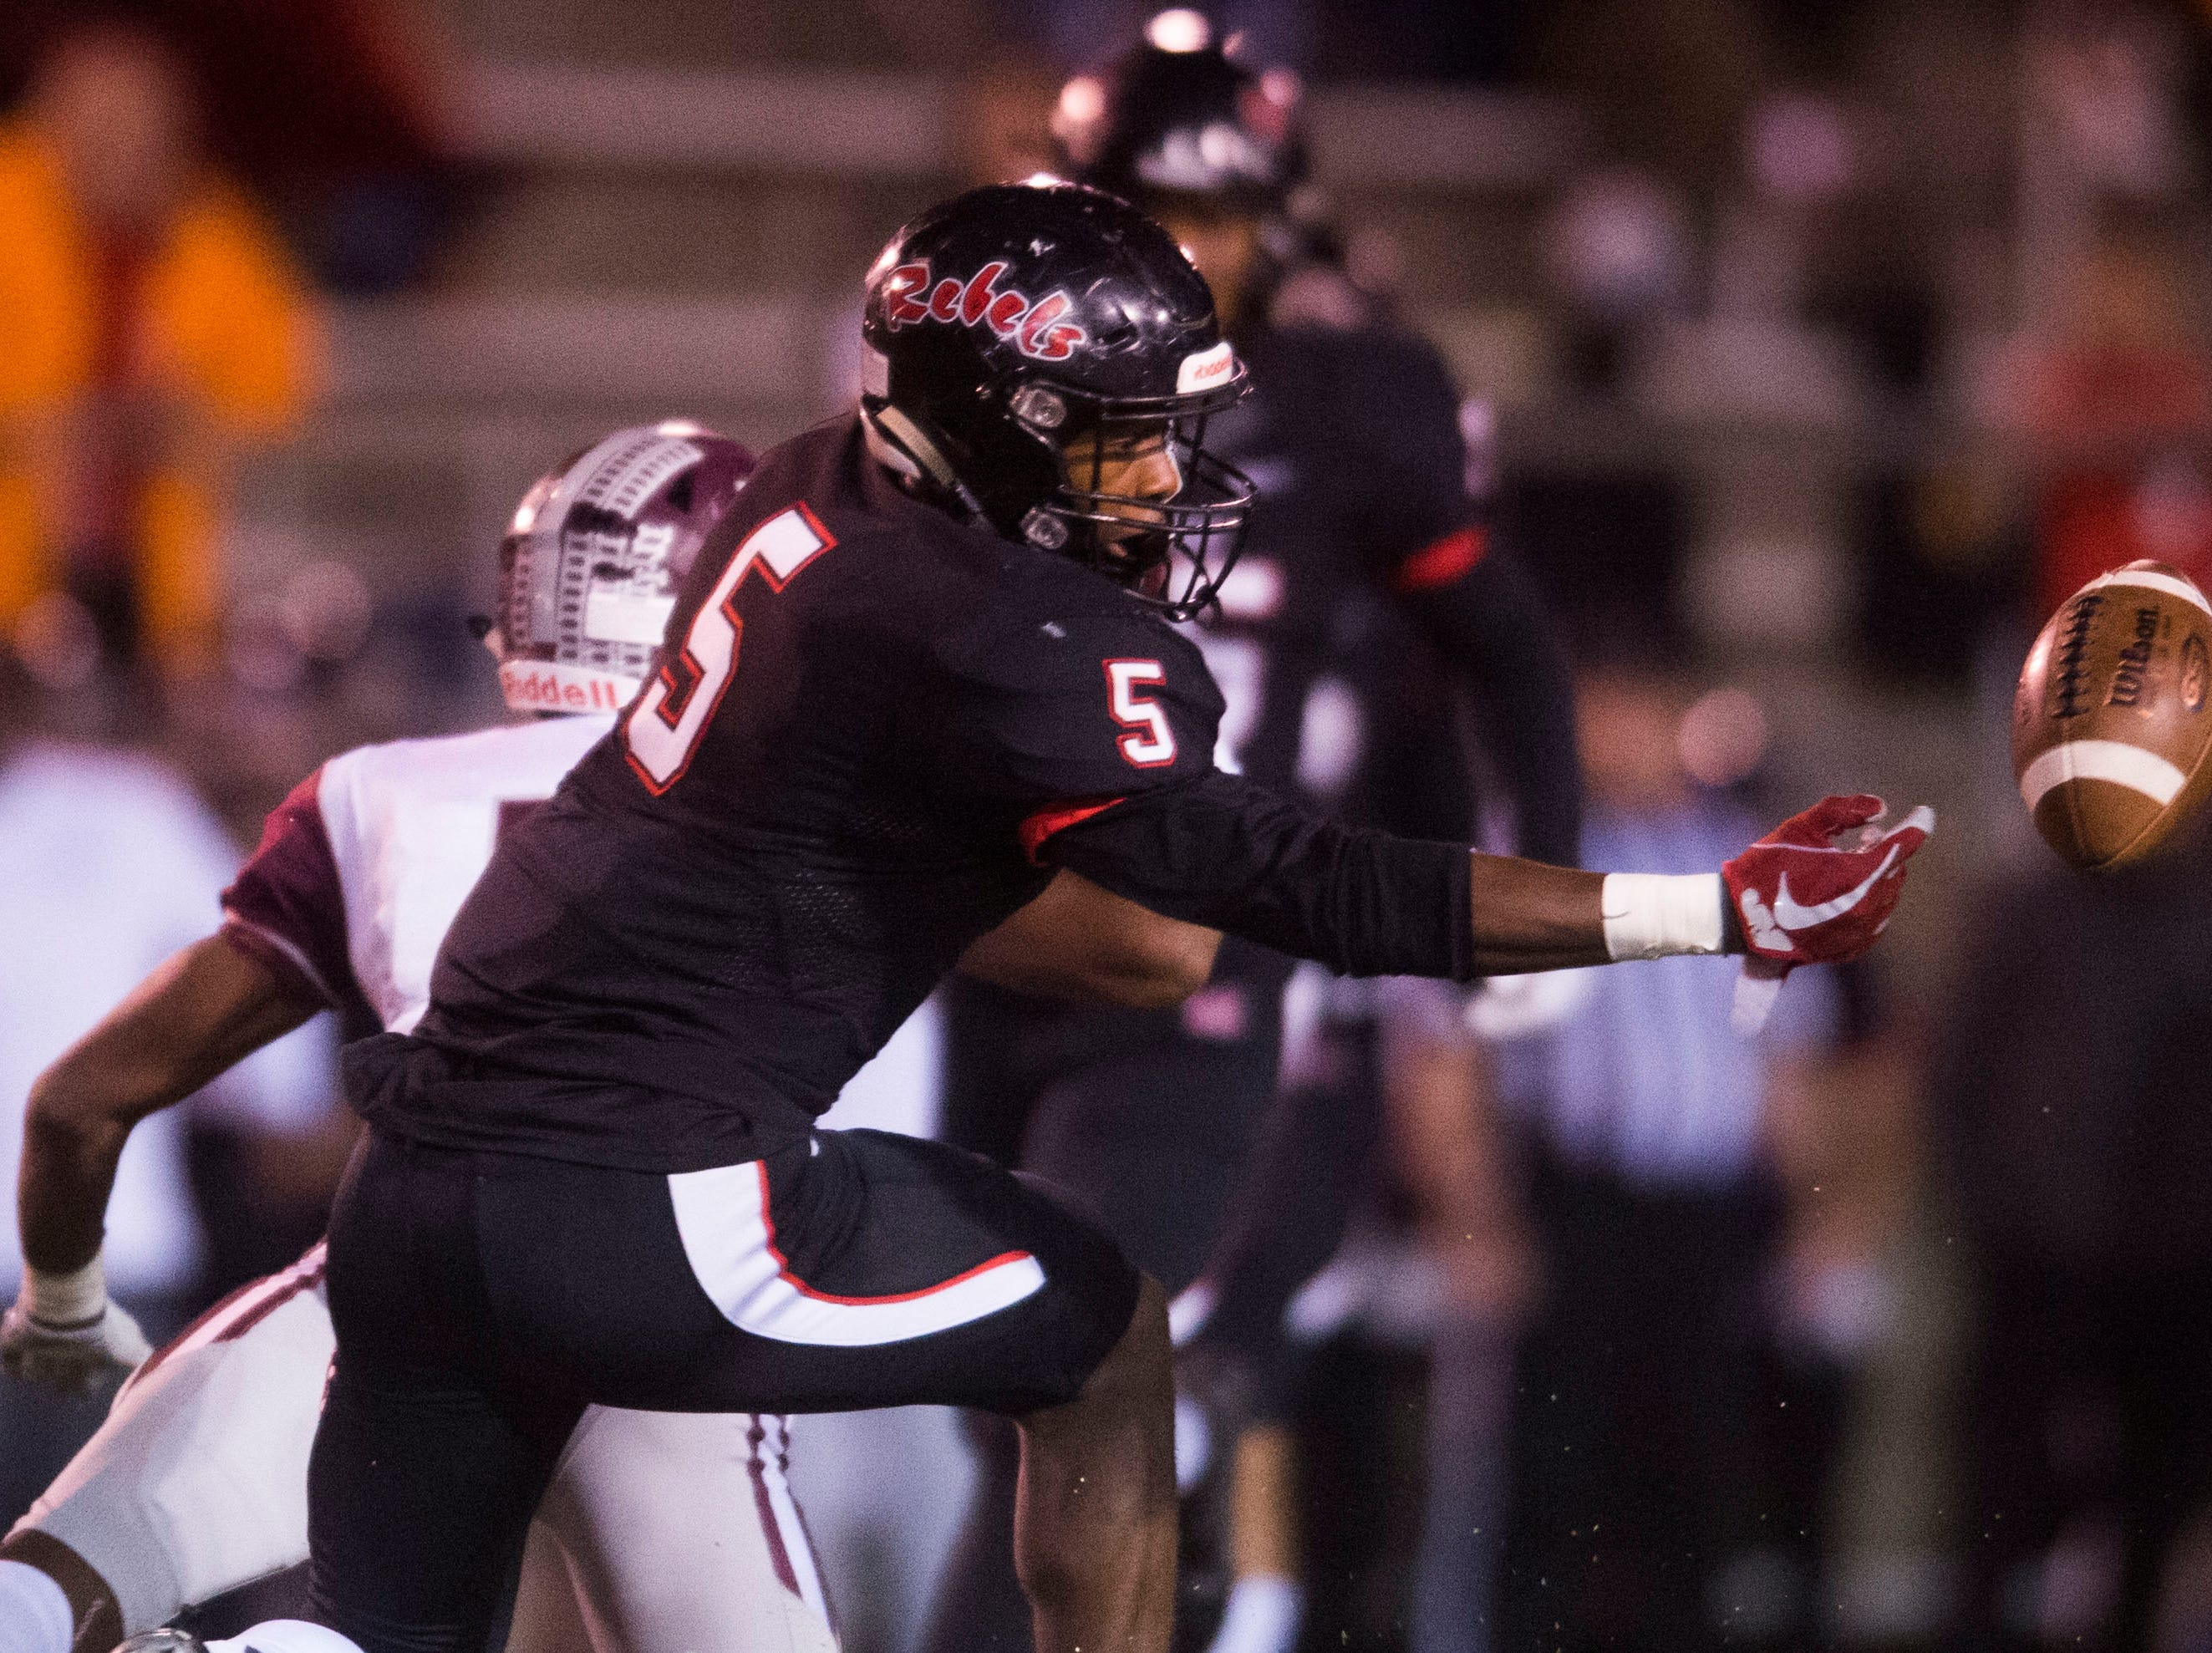 Maryville's DaVon Kimble (5) attempts to recover a fumbled ball during a first round playoff game between Maryville and Bearden at Maryville, Friday, Nov. 2, 2018. Maryville defeated Bearden 28-7.